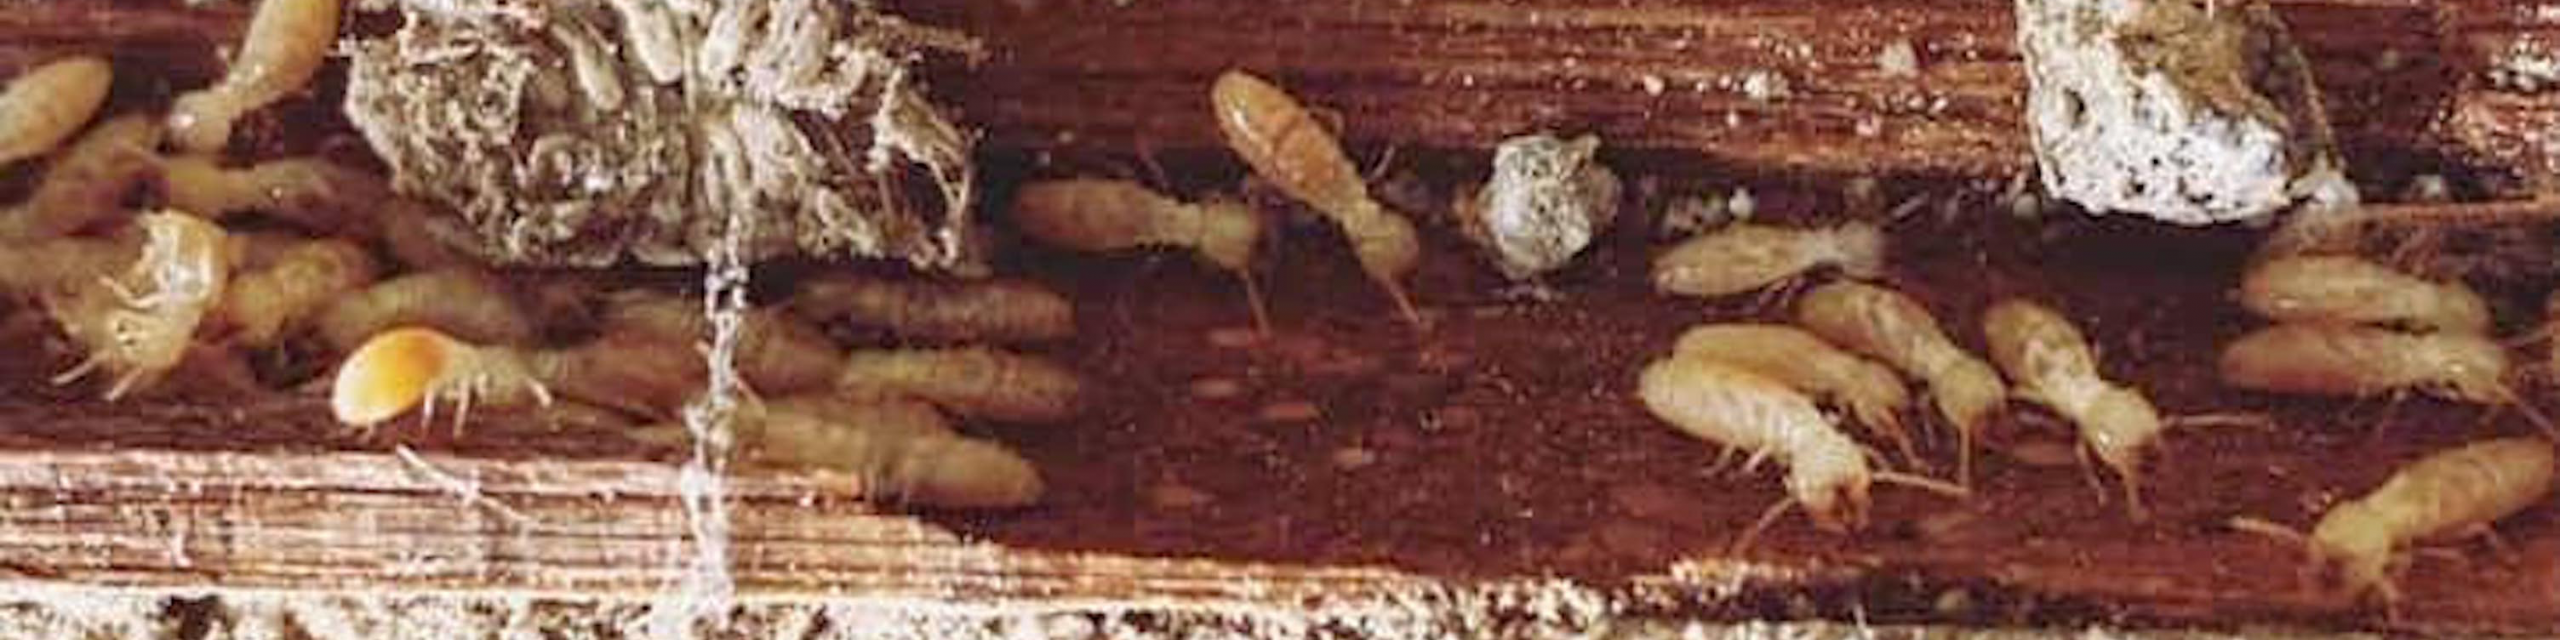 Termite and pest damage repair in Humboldt and Del Norte County